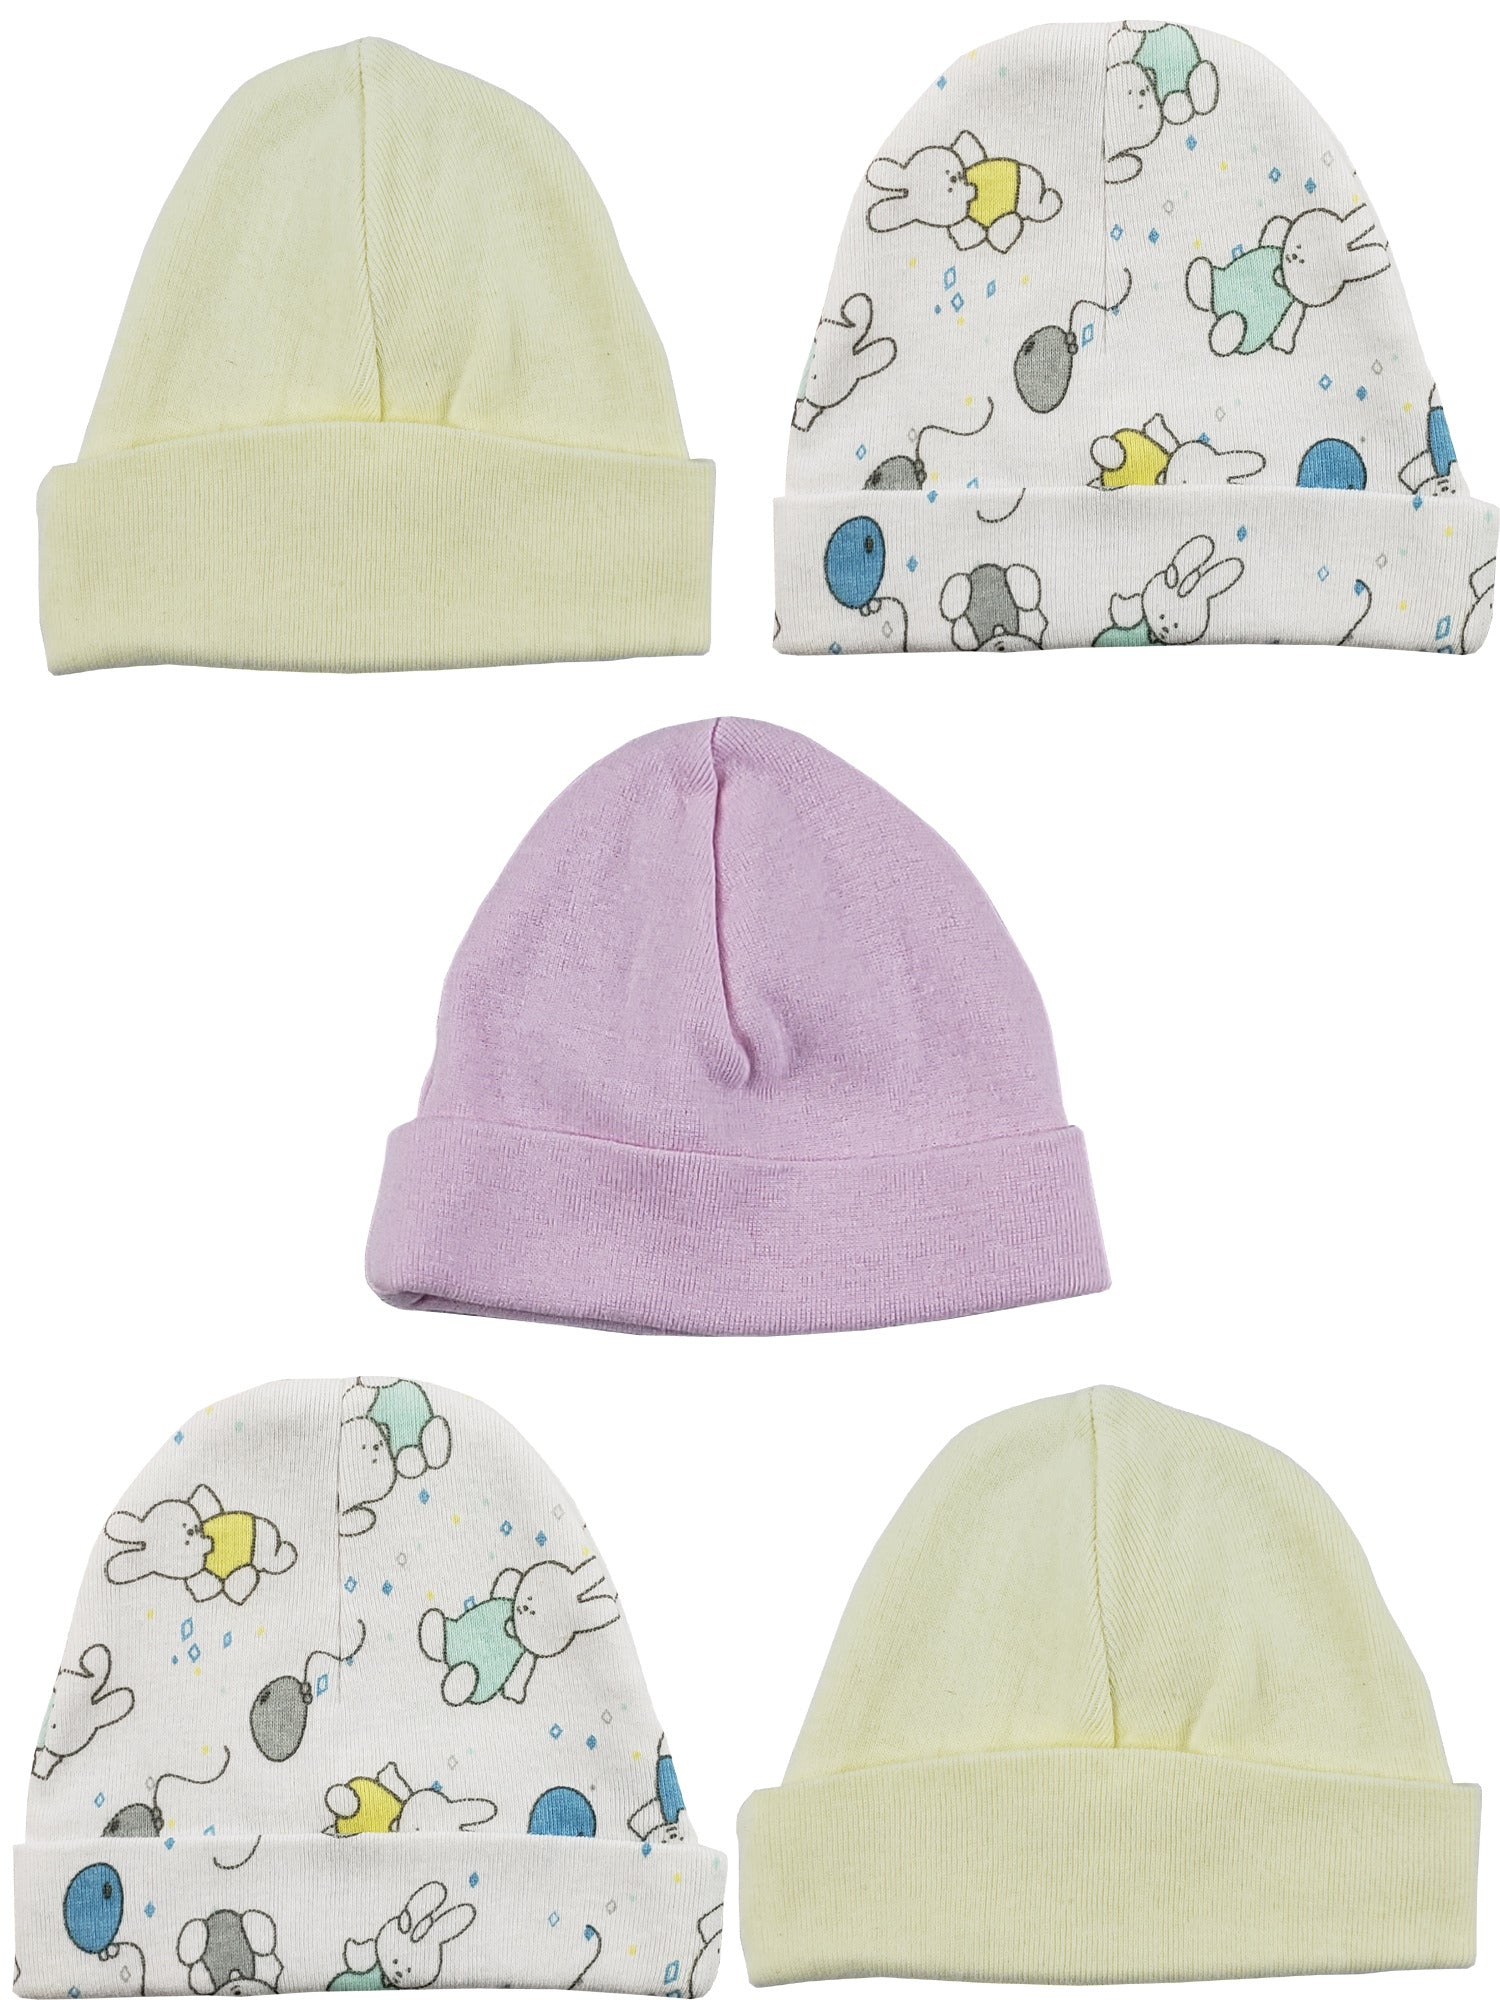 Bambini Girls Baby Cap (Pack of 5)